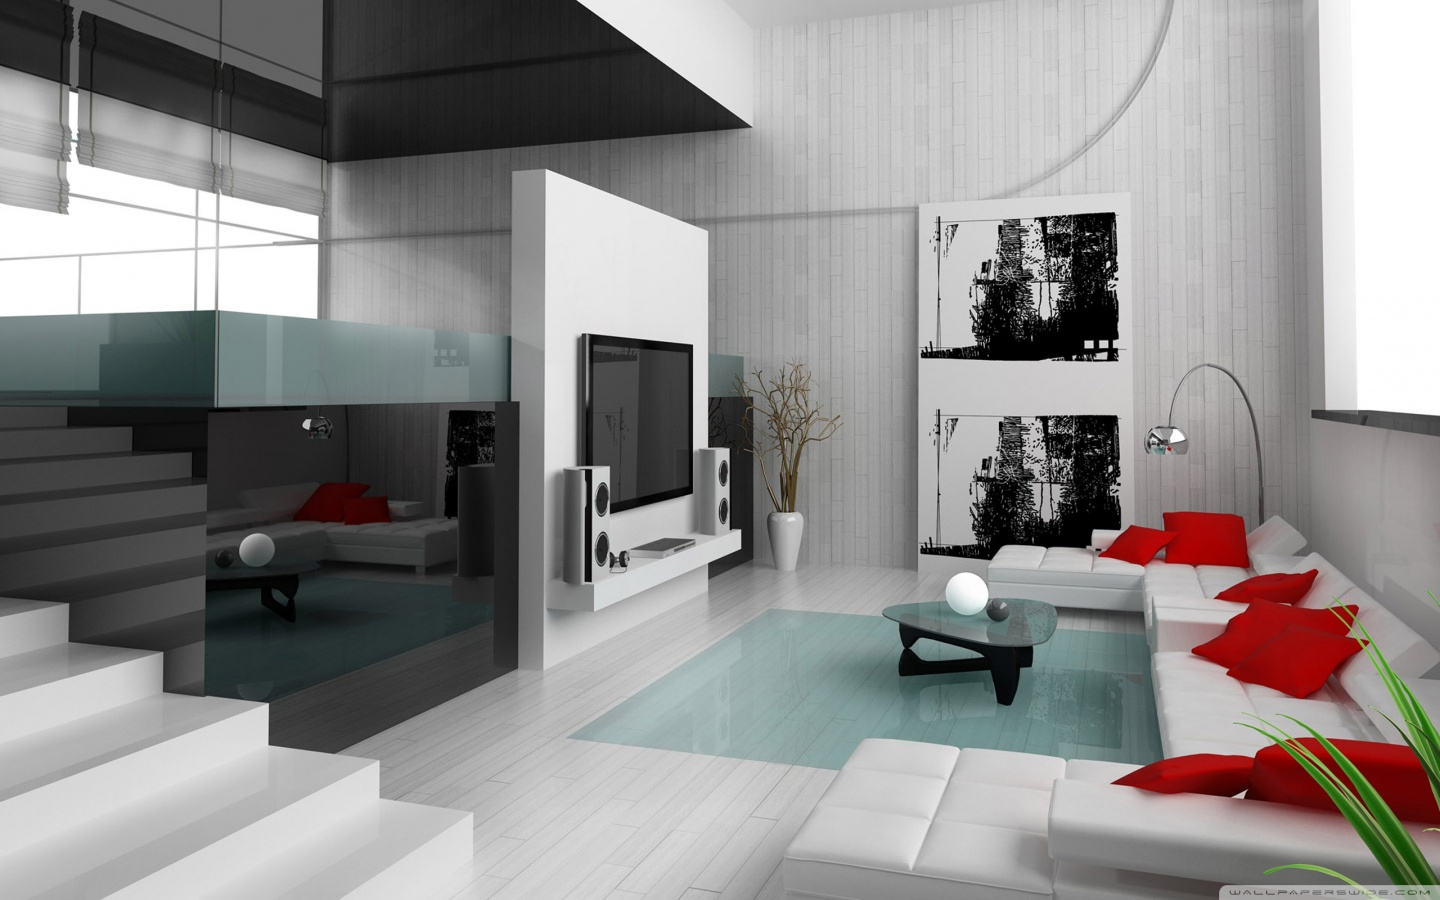 Minimalist interior design imagination art architecture for Picture of interior designs of house